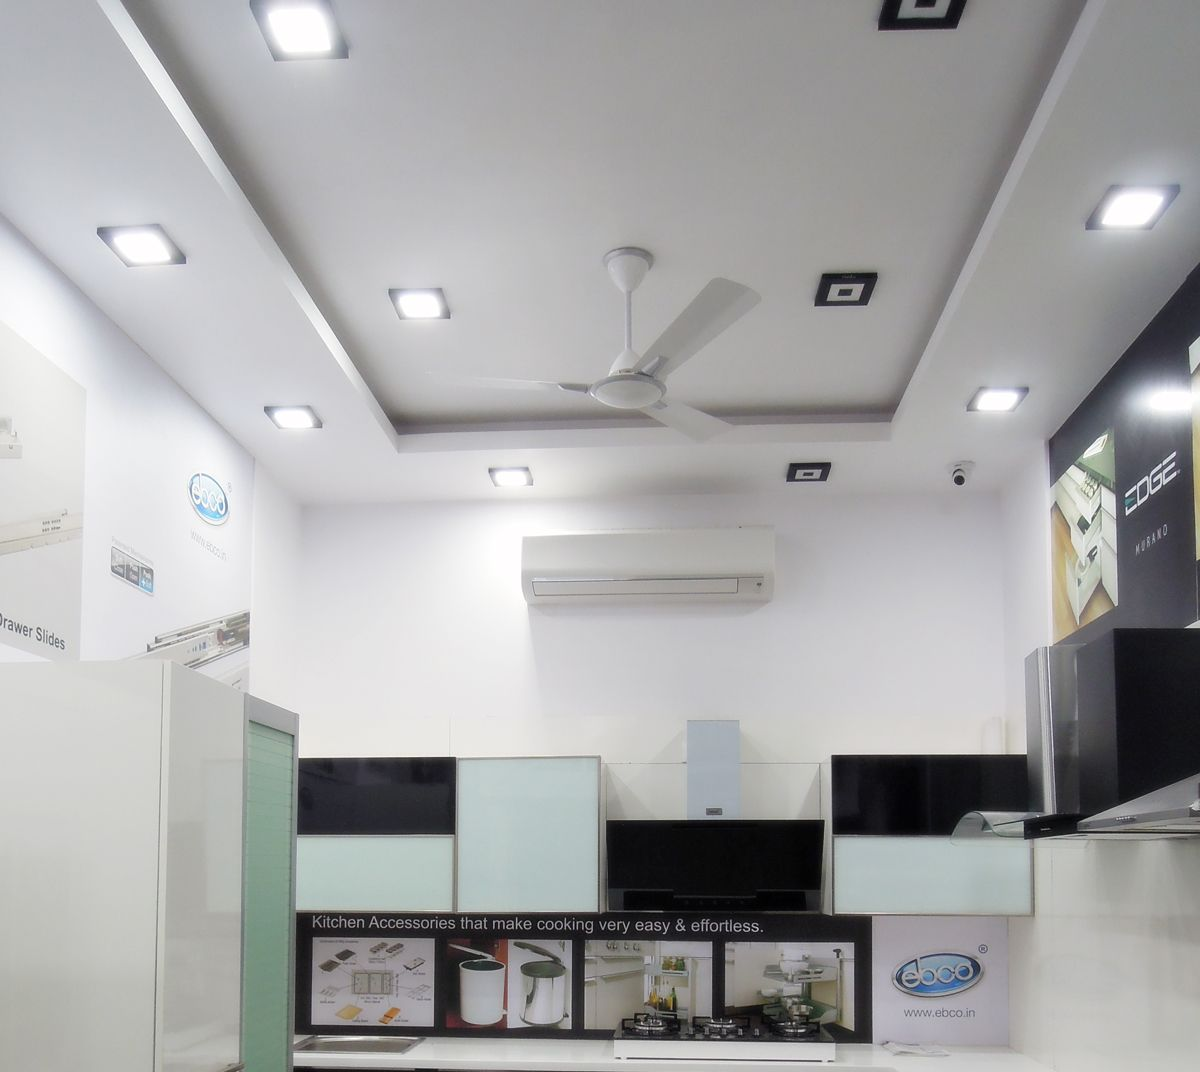 False Ceiling Led Lights Size : W led recessed light for false ceiling ideas the